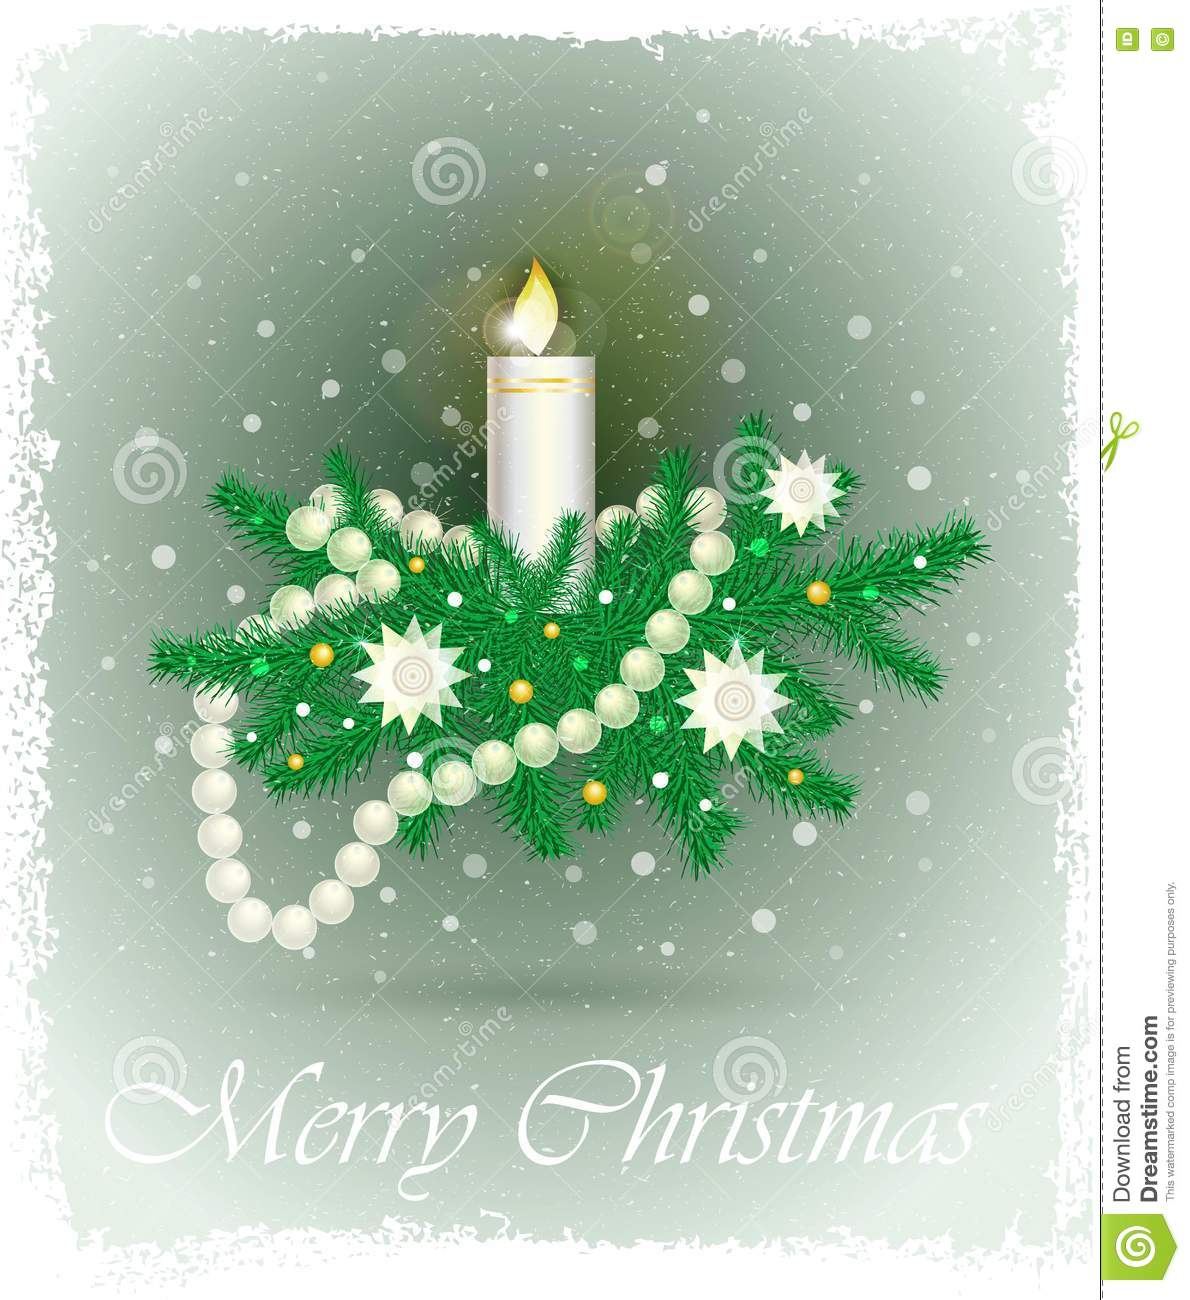 Christmas card with fir branches, candle, beads, stars.